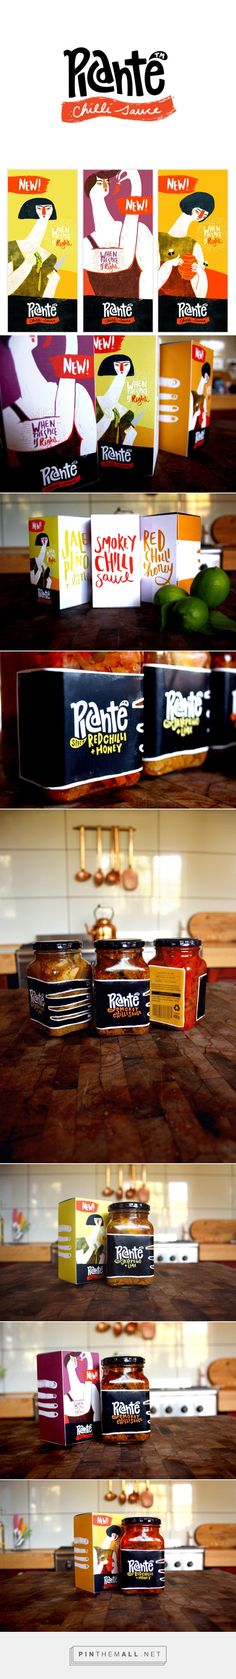 PICANTE CHILLI SAUCE on Behance by Sonia Dearling curated by Packaging Diva PD.  Packaging to evoke a sense of sensuality and curiosity in the brand targeting females as primary purchases and males as primary consumers.